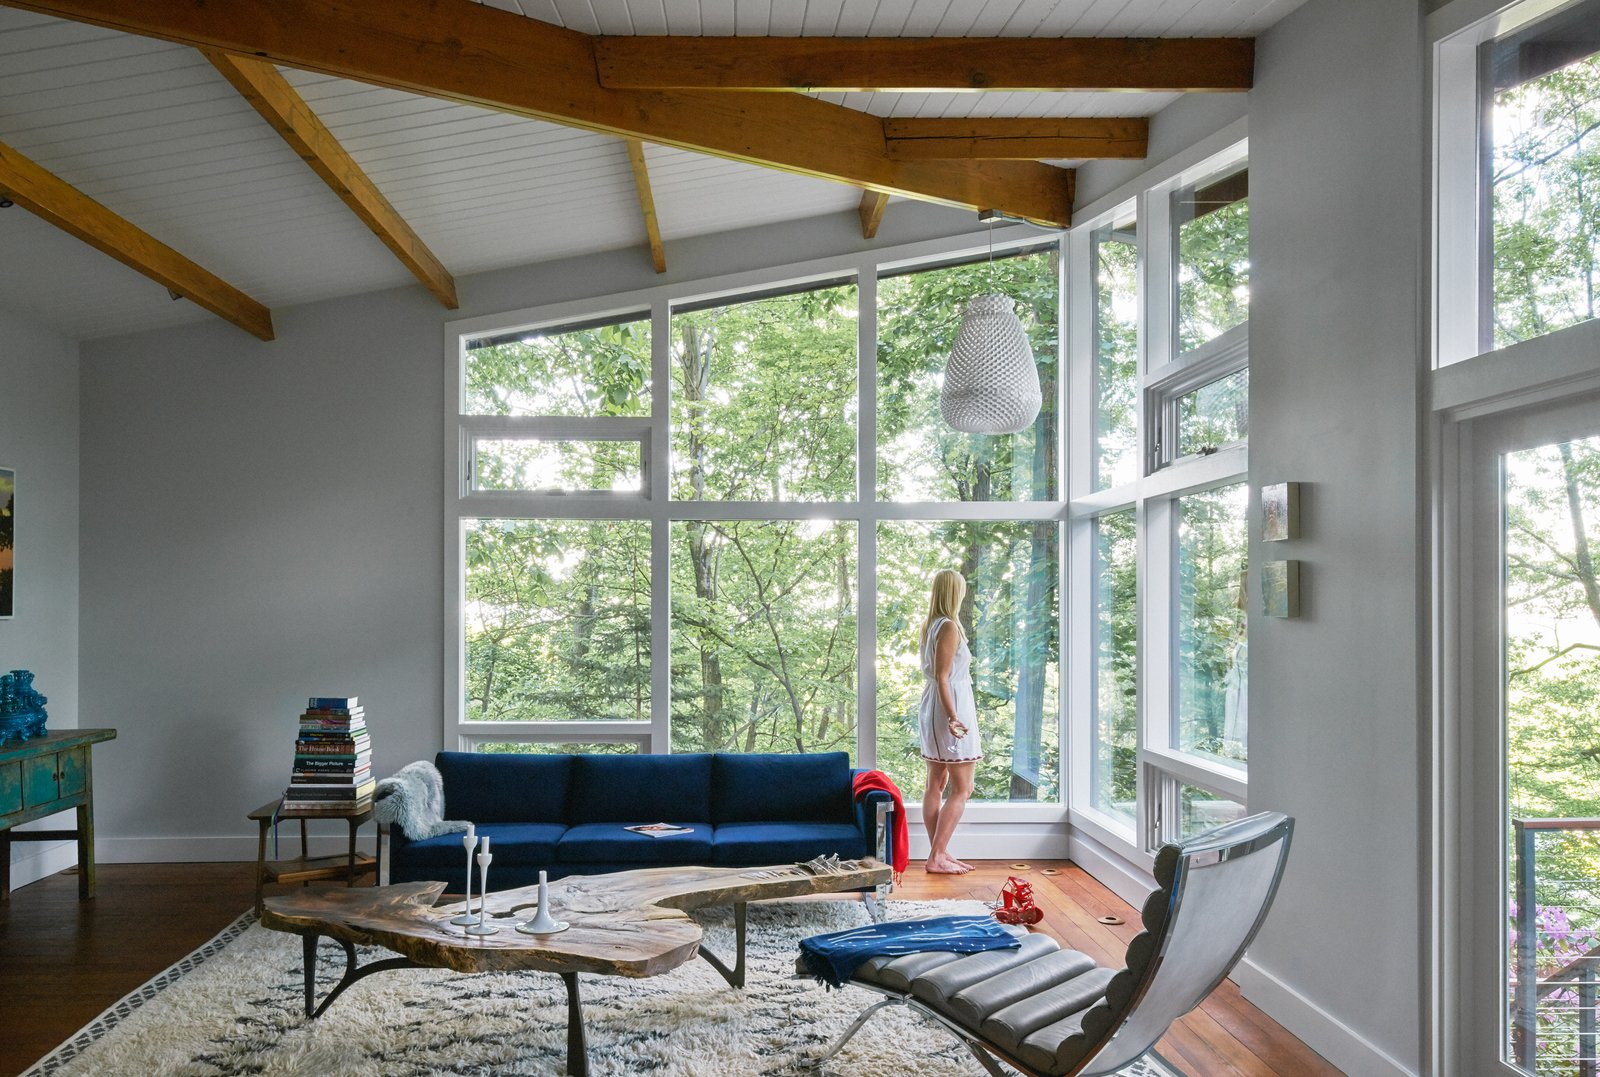 Storage, Exterior, Sliding, Picture, Sofa, End Tables, Coffee Tables, Casement, and Living Wood beams radiate from a central structural core to support deep roof eaves, each one painstakingly refinished. New energy-efficient windows create a cozy moment.  Living Casement Sofa Photos from Highland Perch House